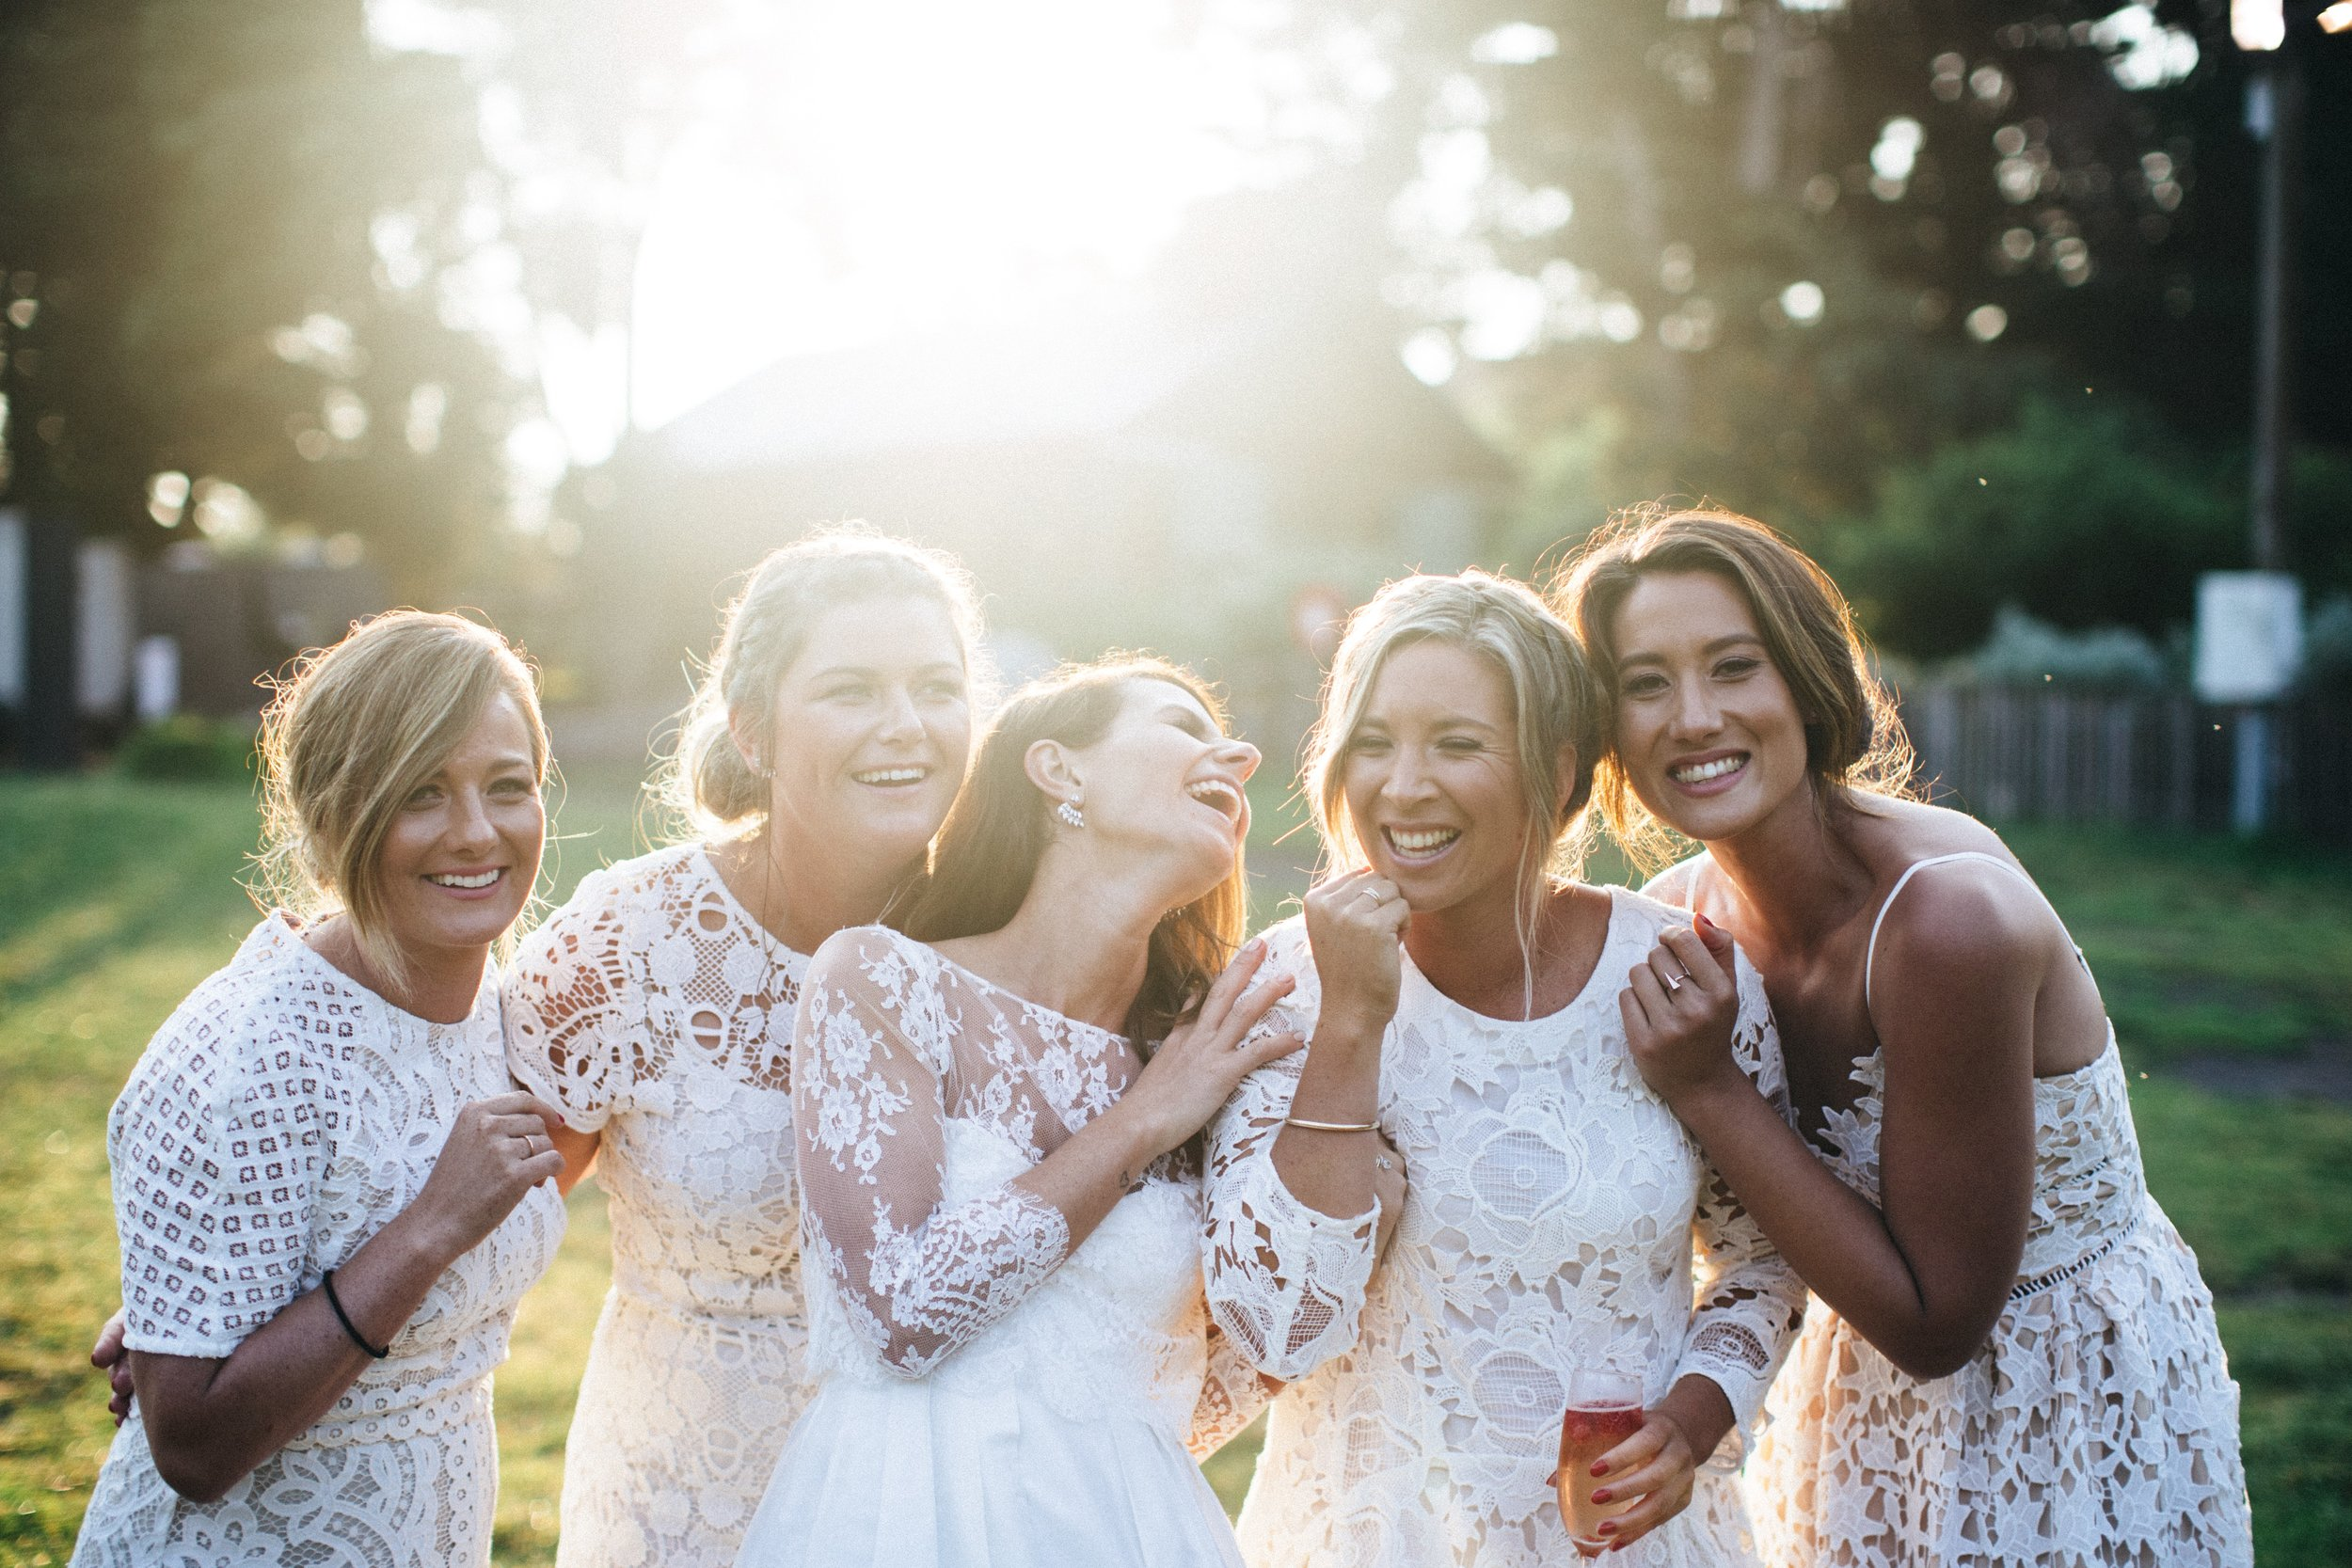 French-and-fahey-festival-weddings-france-bridal-party.jpg